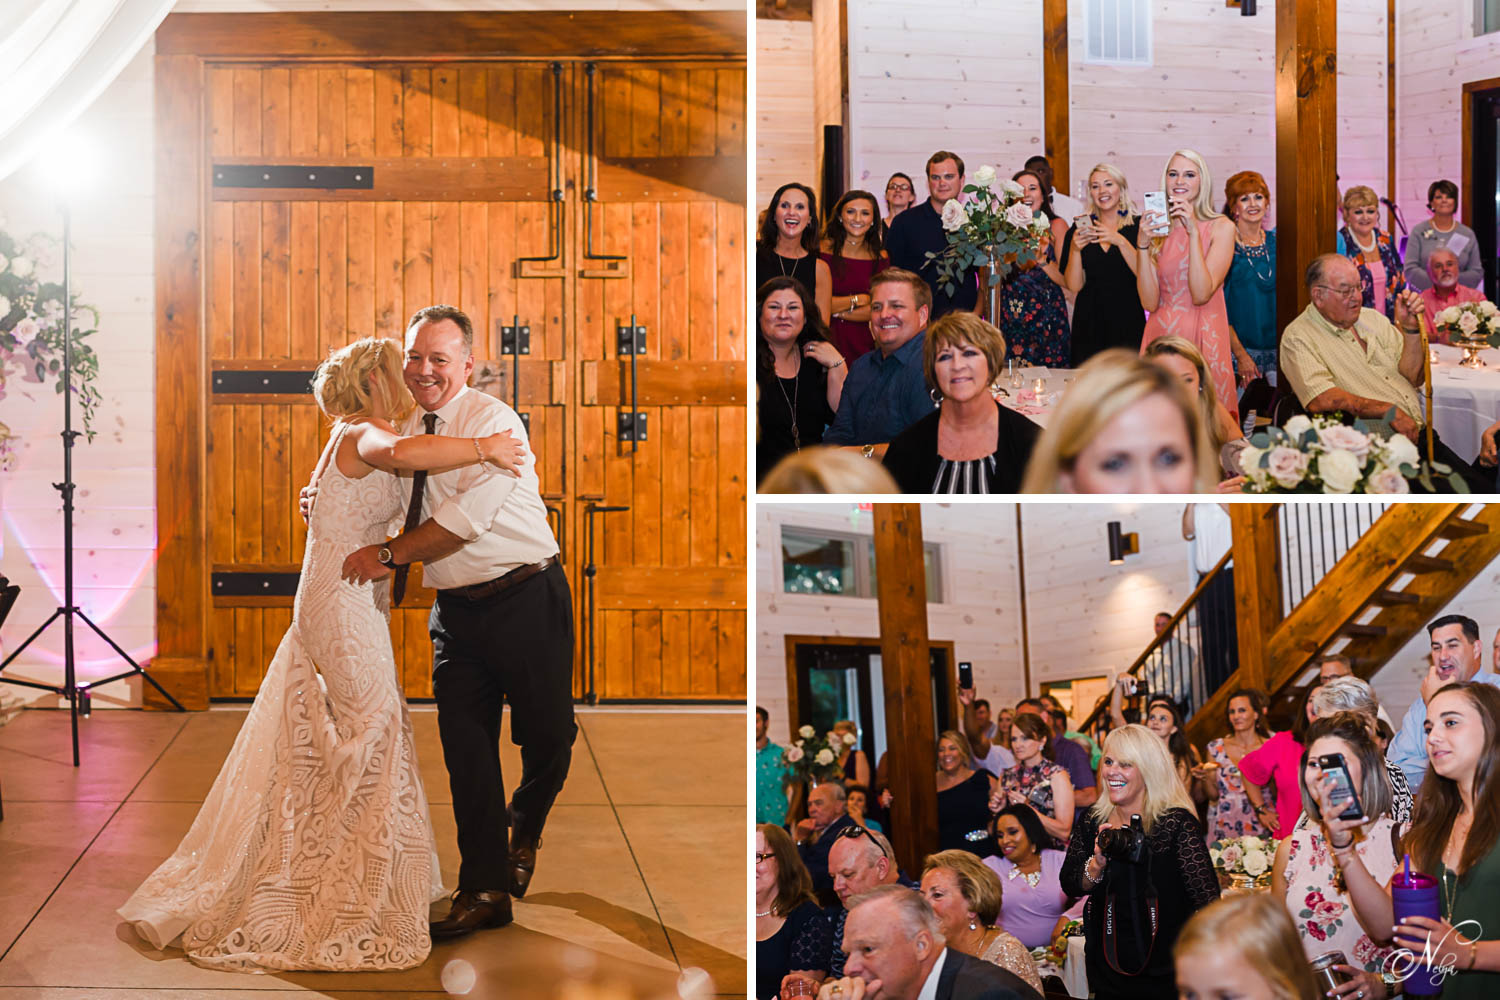 dad hugging his daughter on dancefloor at ther wedding. And wedding reception guests reaction to the father daughter dance they put on.